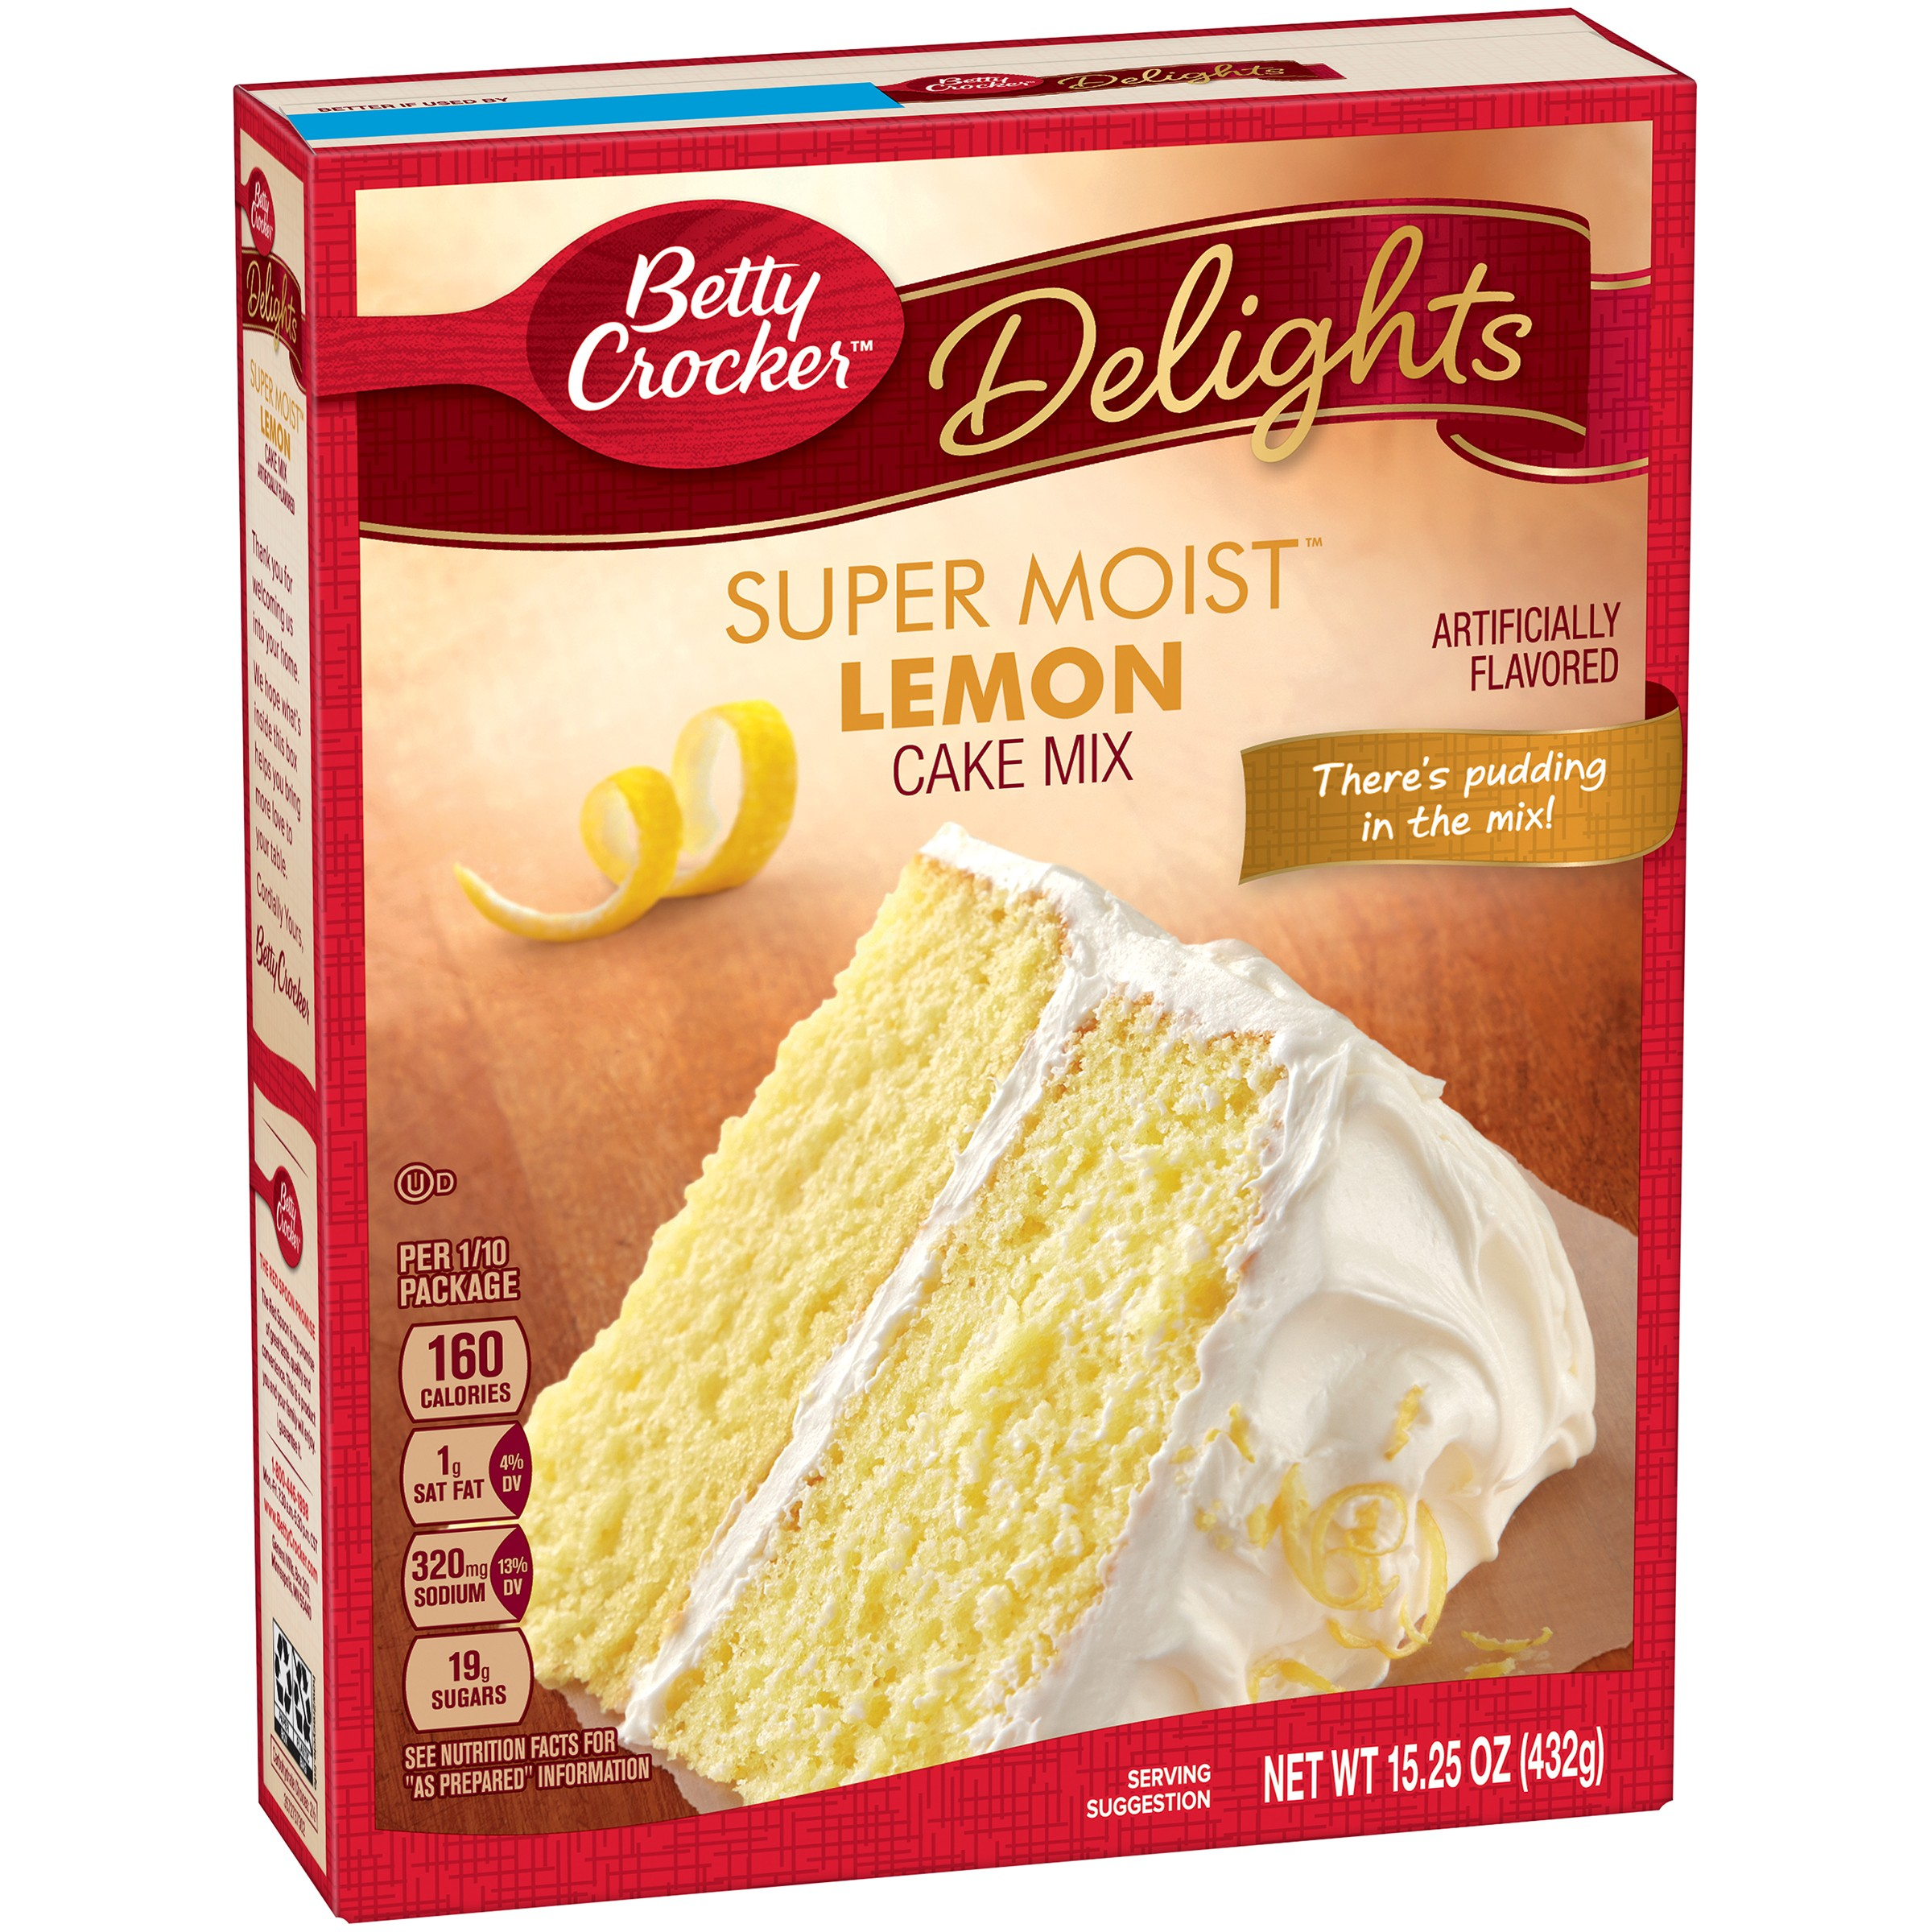 Betty Crocker Delights Super Moist Cake Mix Lemon, 15.25 OZ by General Mills Sales, Inc.